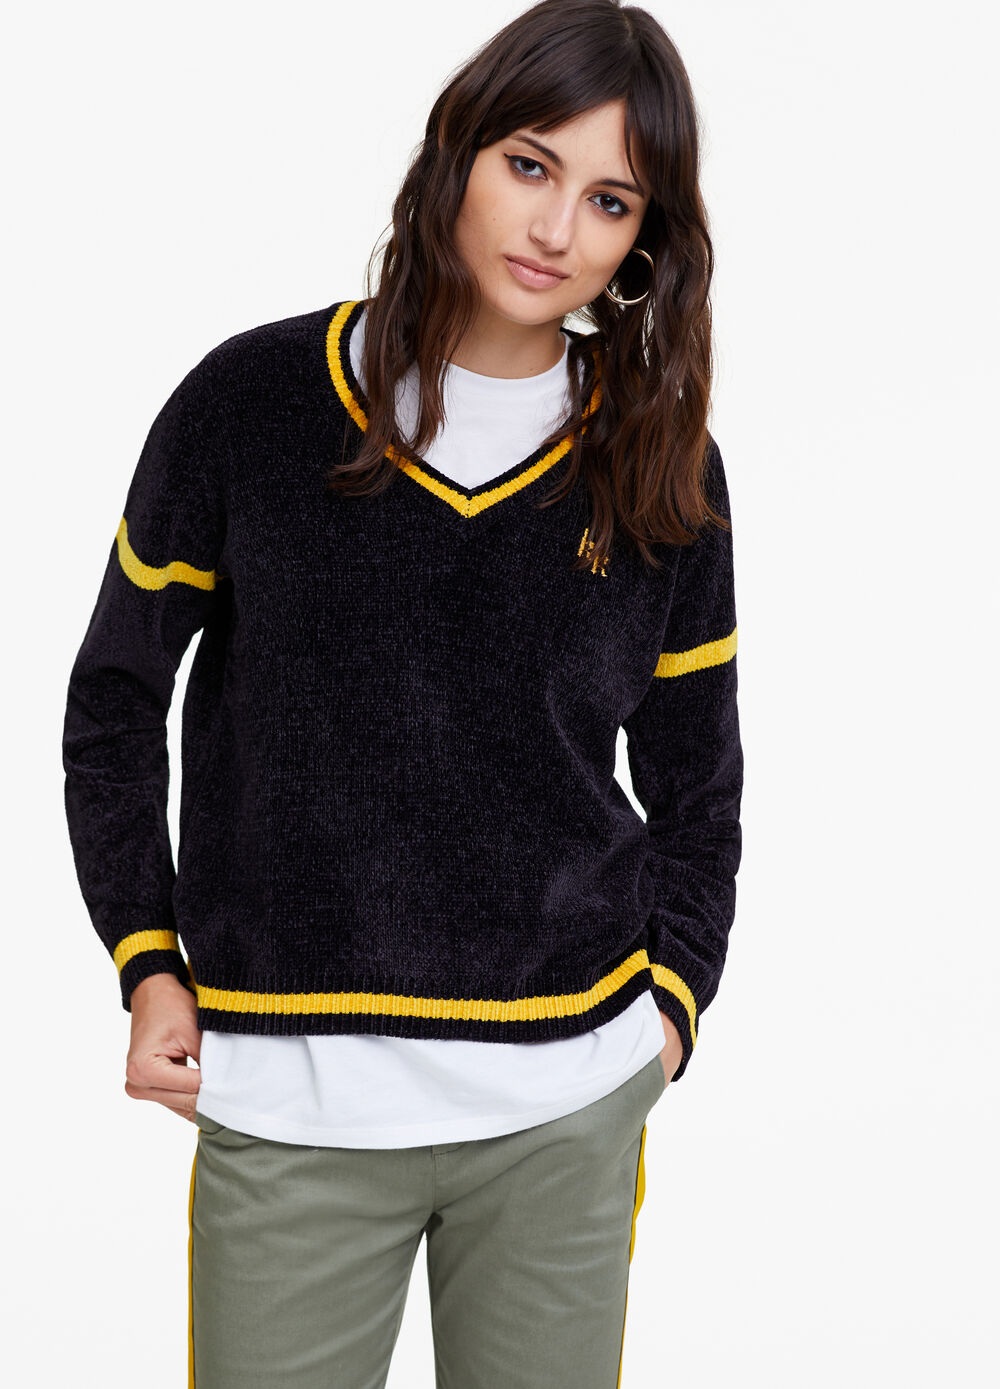 K+K for OVS striped chenille pullover